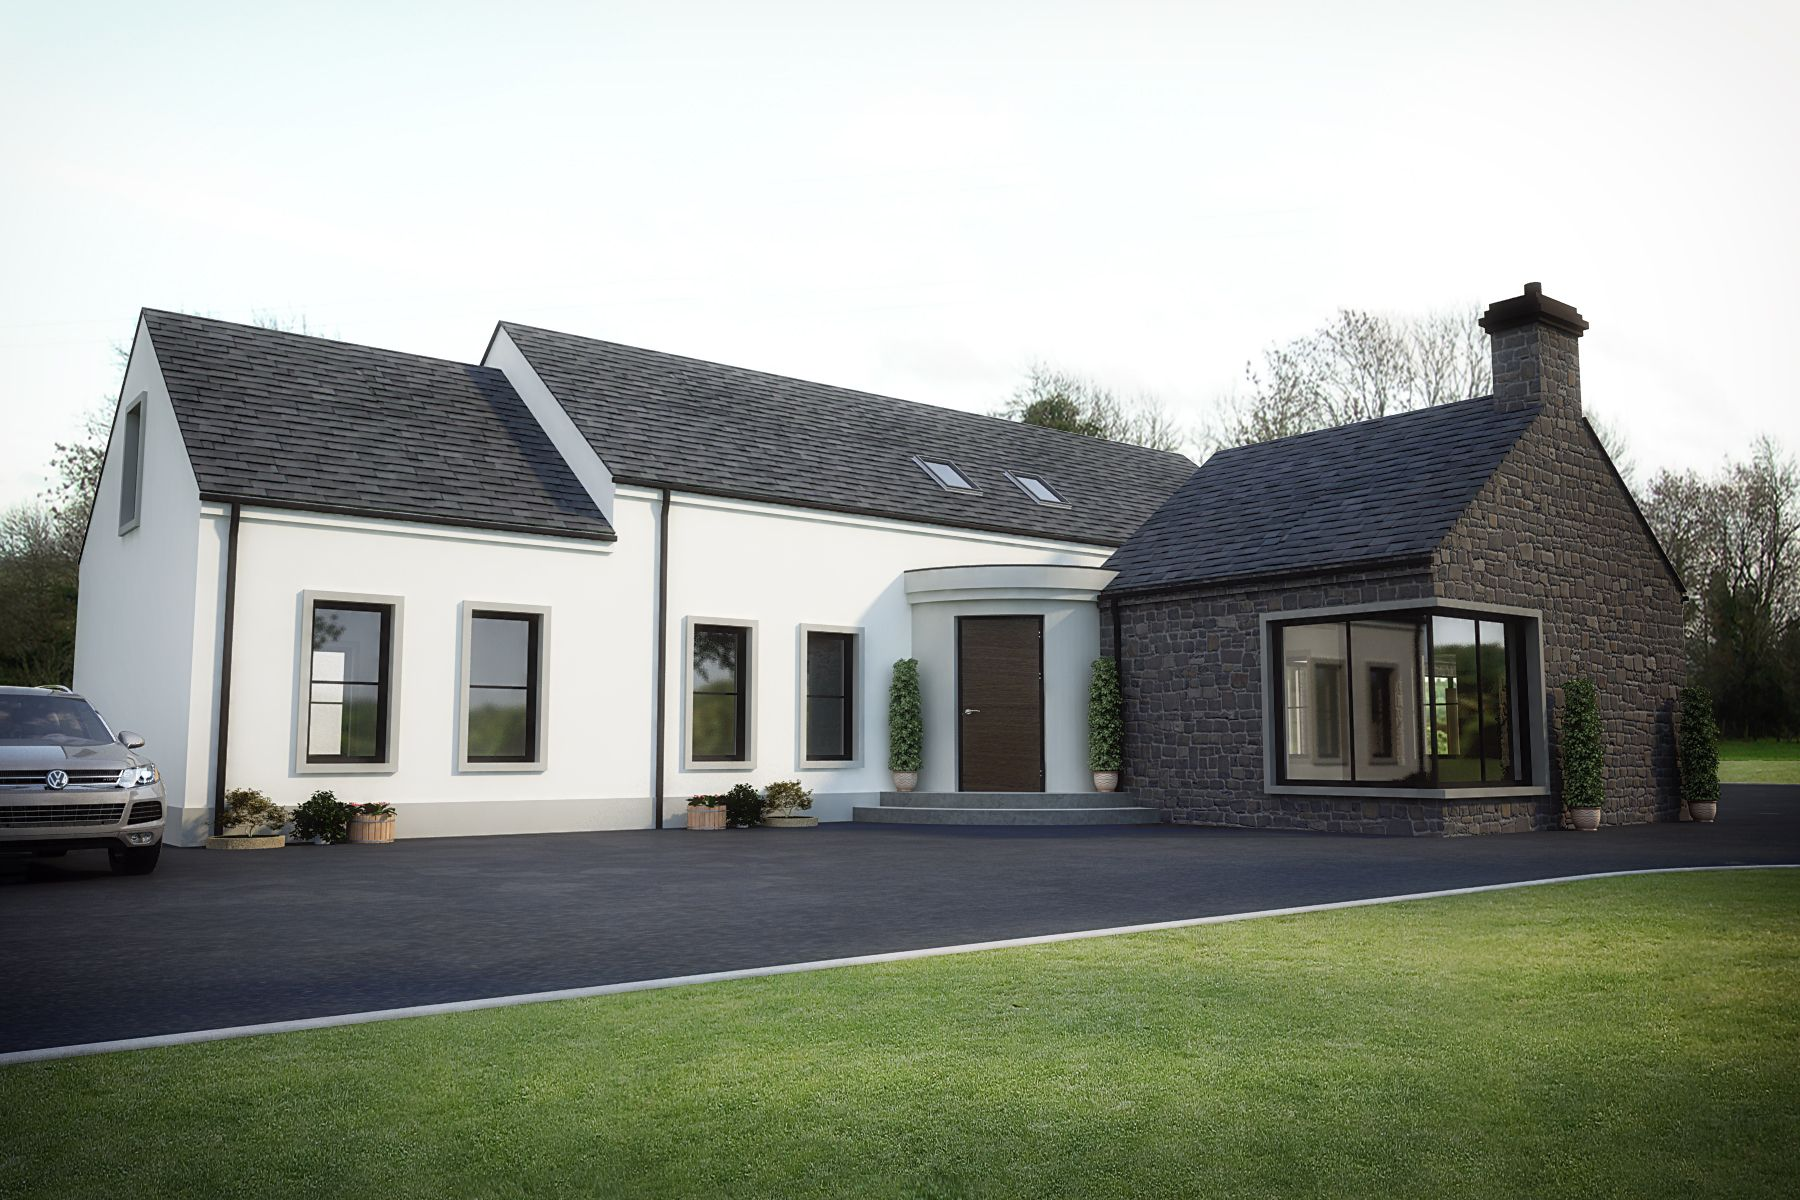 Modern Country House Design Newline Architects House Exterior Country Modern Home Country House Design